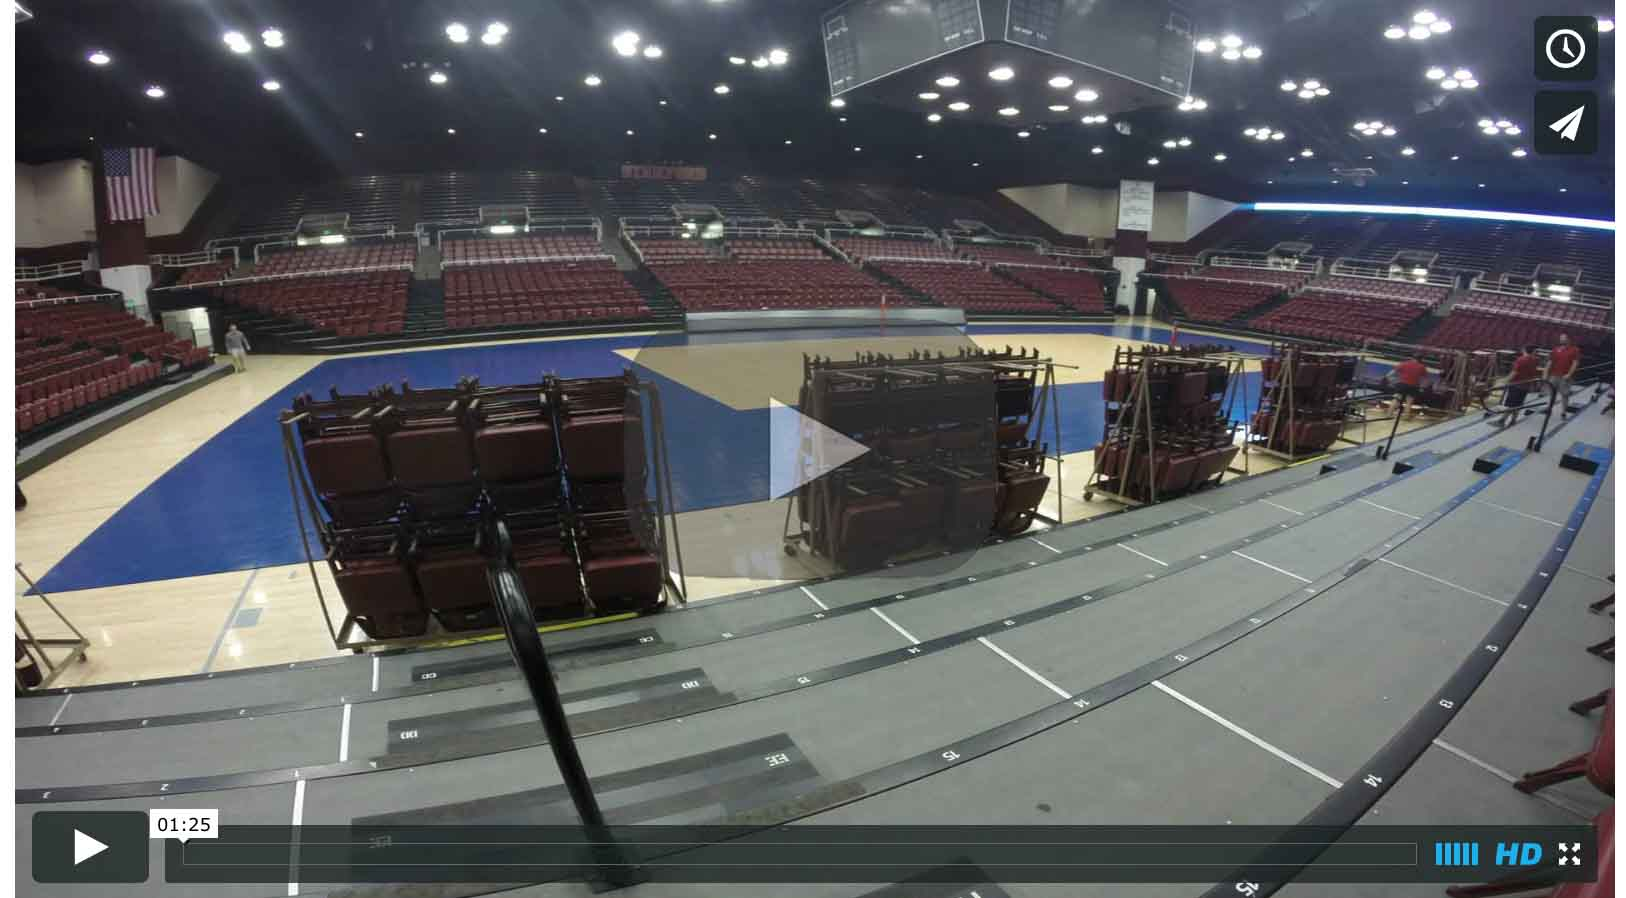 2015 Men's DI NCAA National Volleyball Championship Court Installation Time Lapse